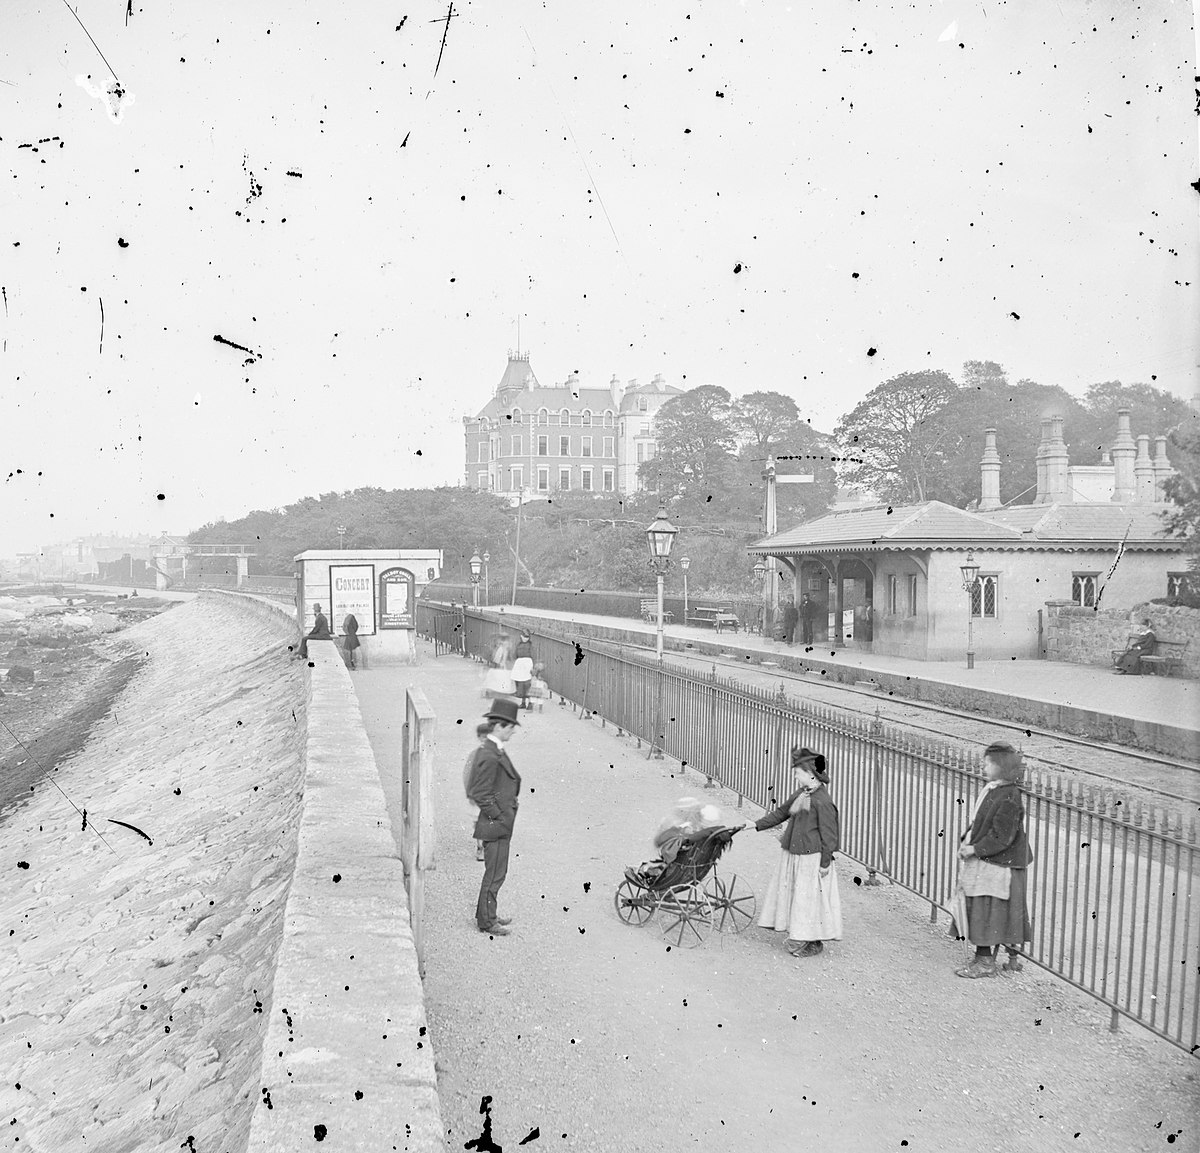 Salthill And Monkstown Railway Station